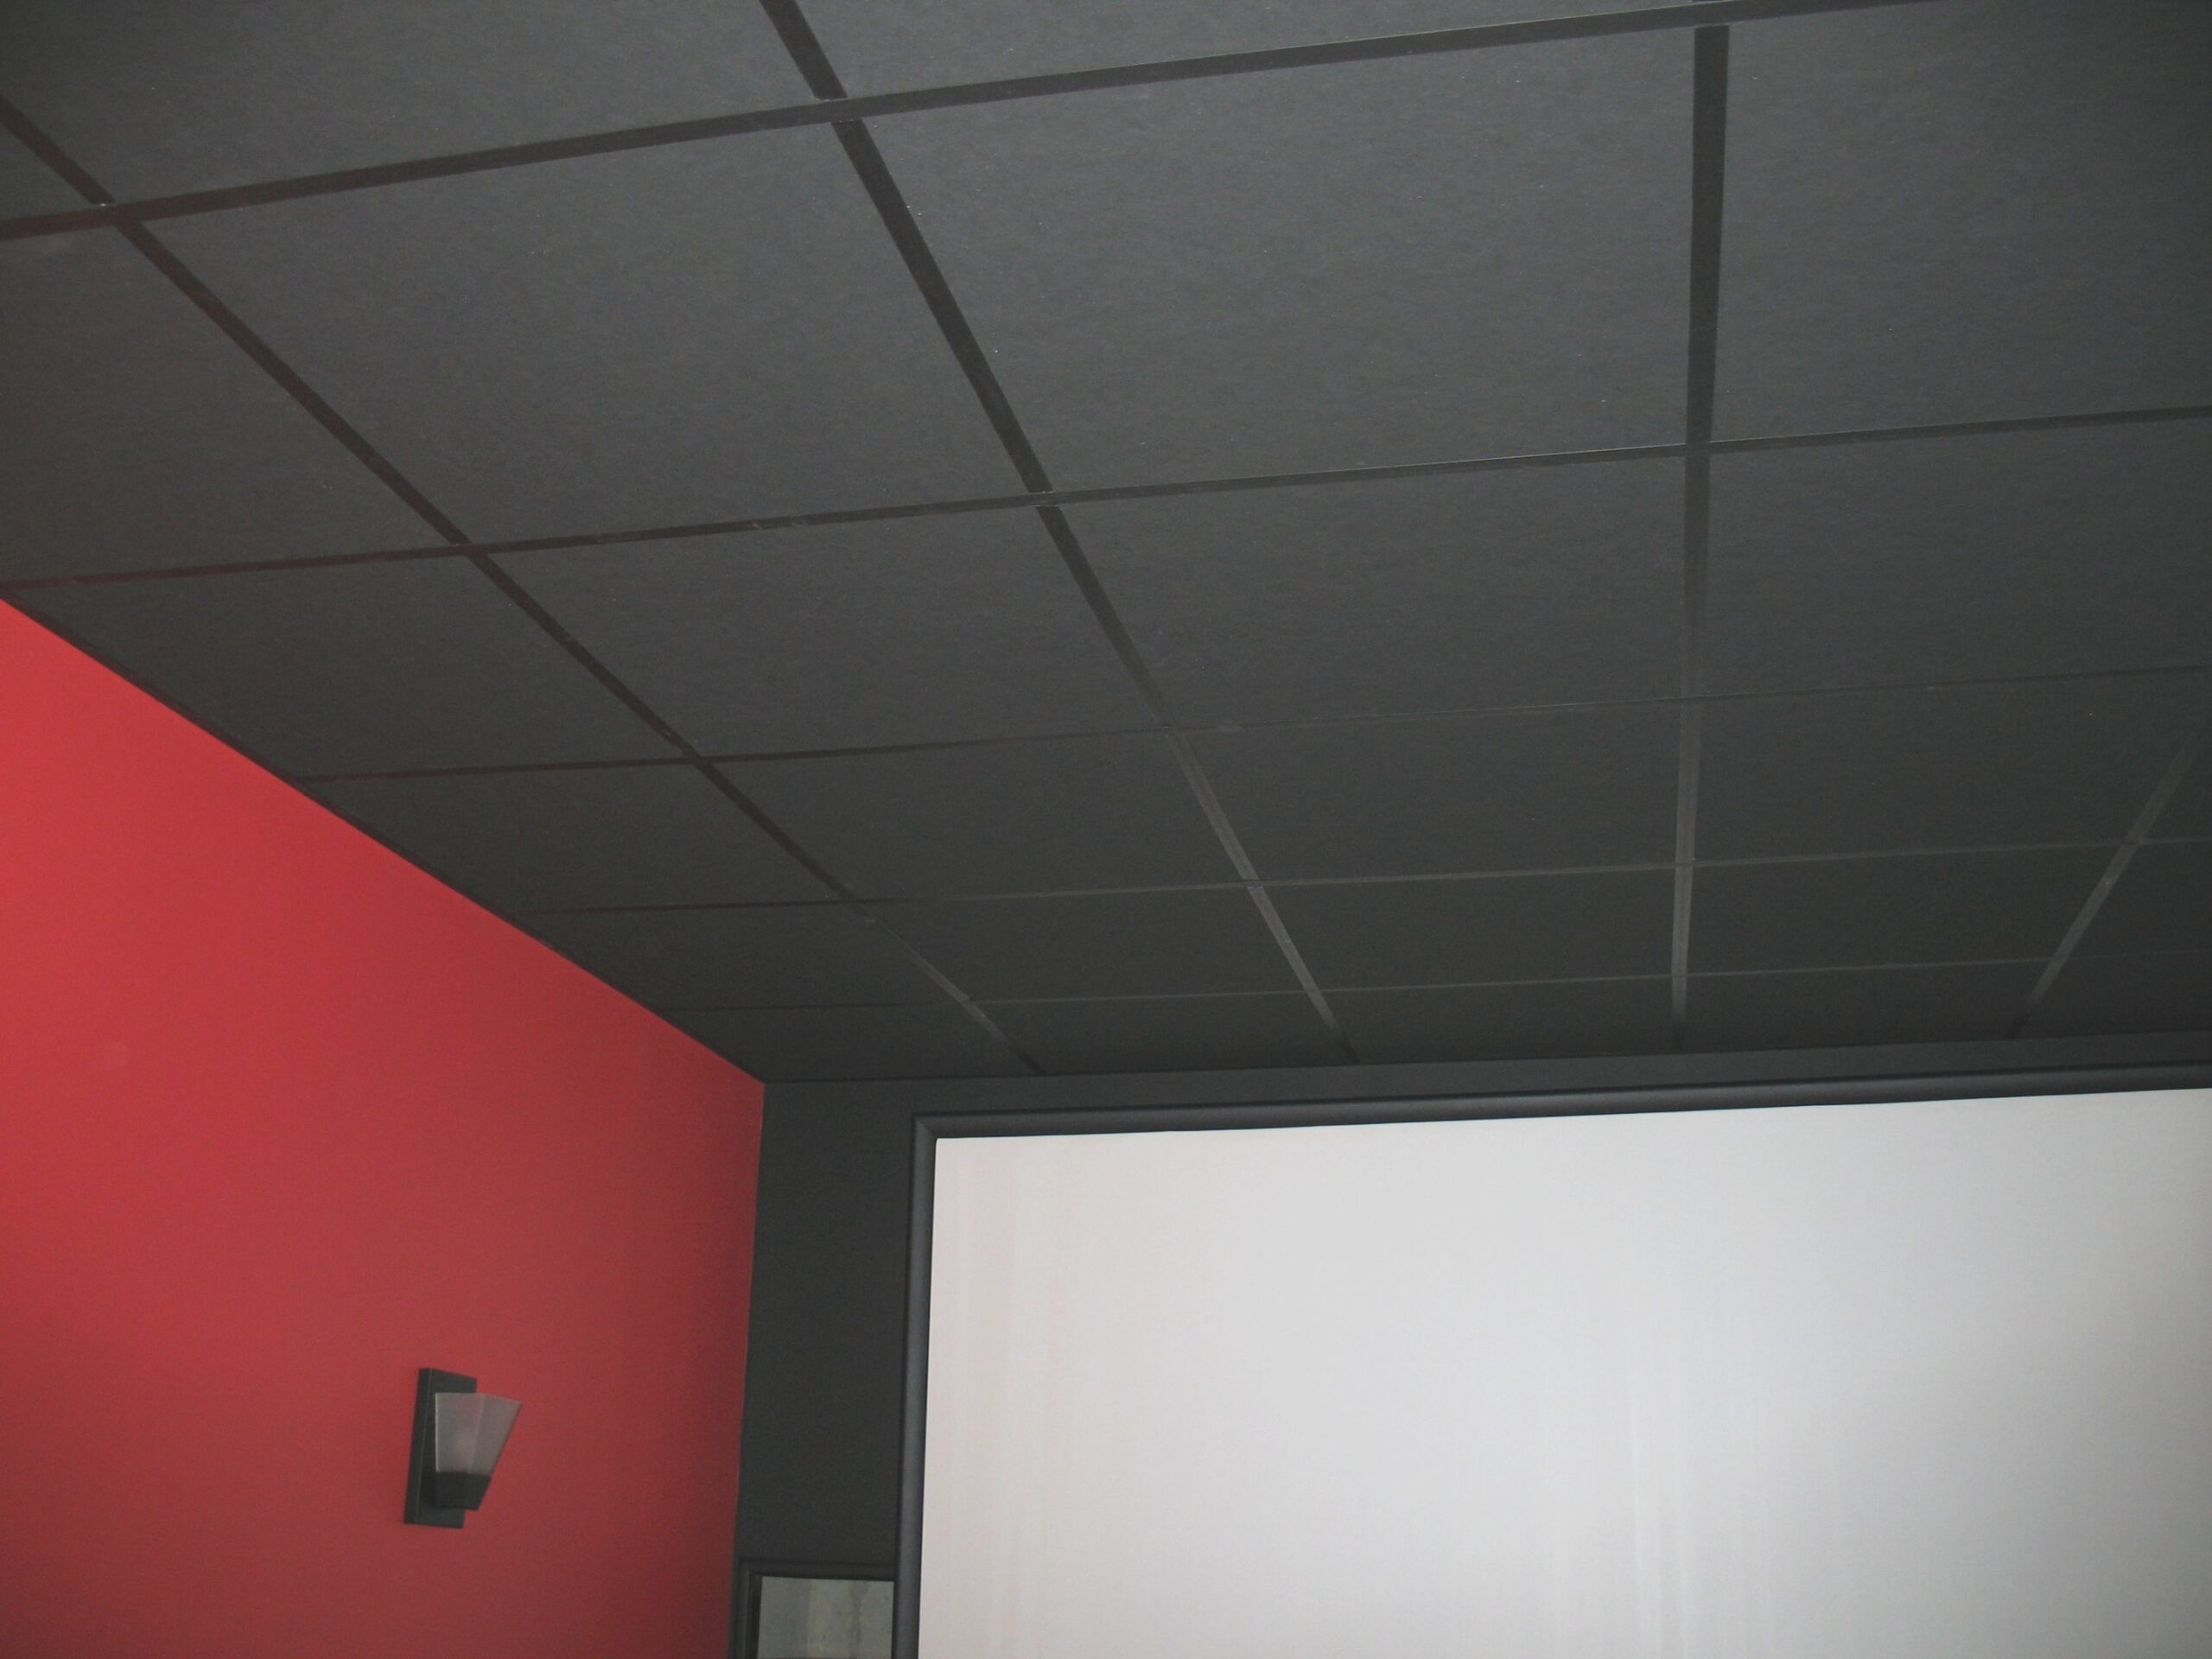 Acoustic Ceiling Tiles Home Depot | Ceilings | Drop pertaining to Drop Ceilings In Homes